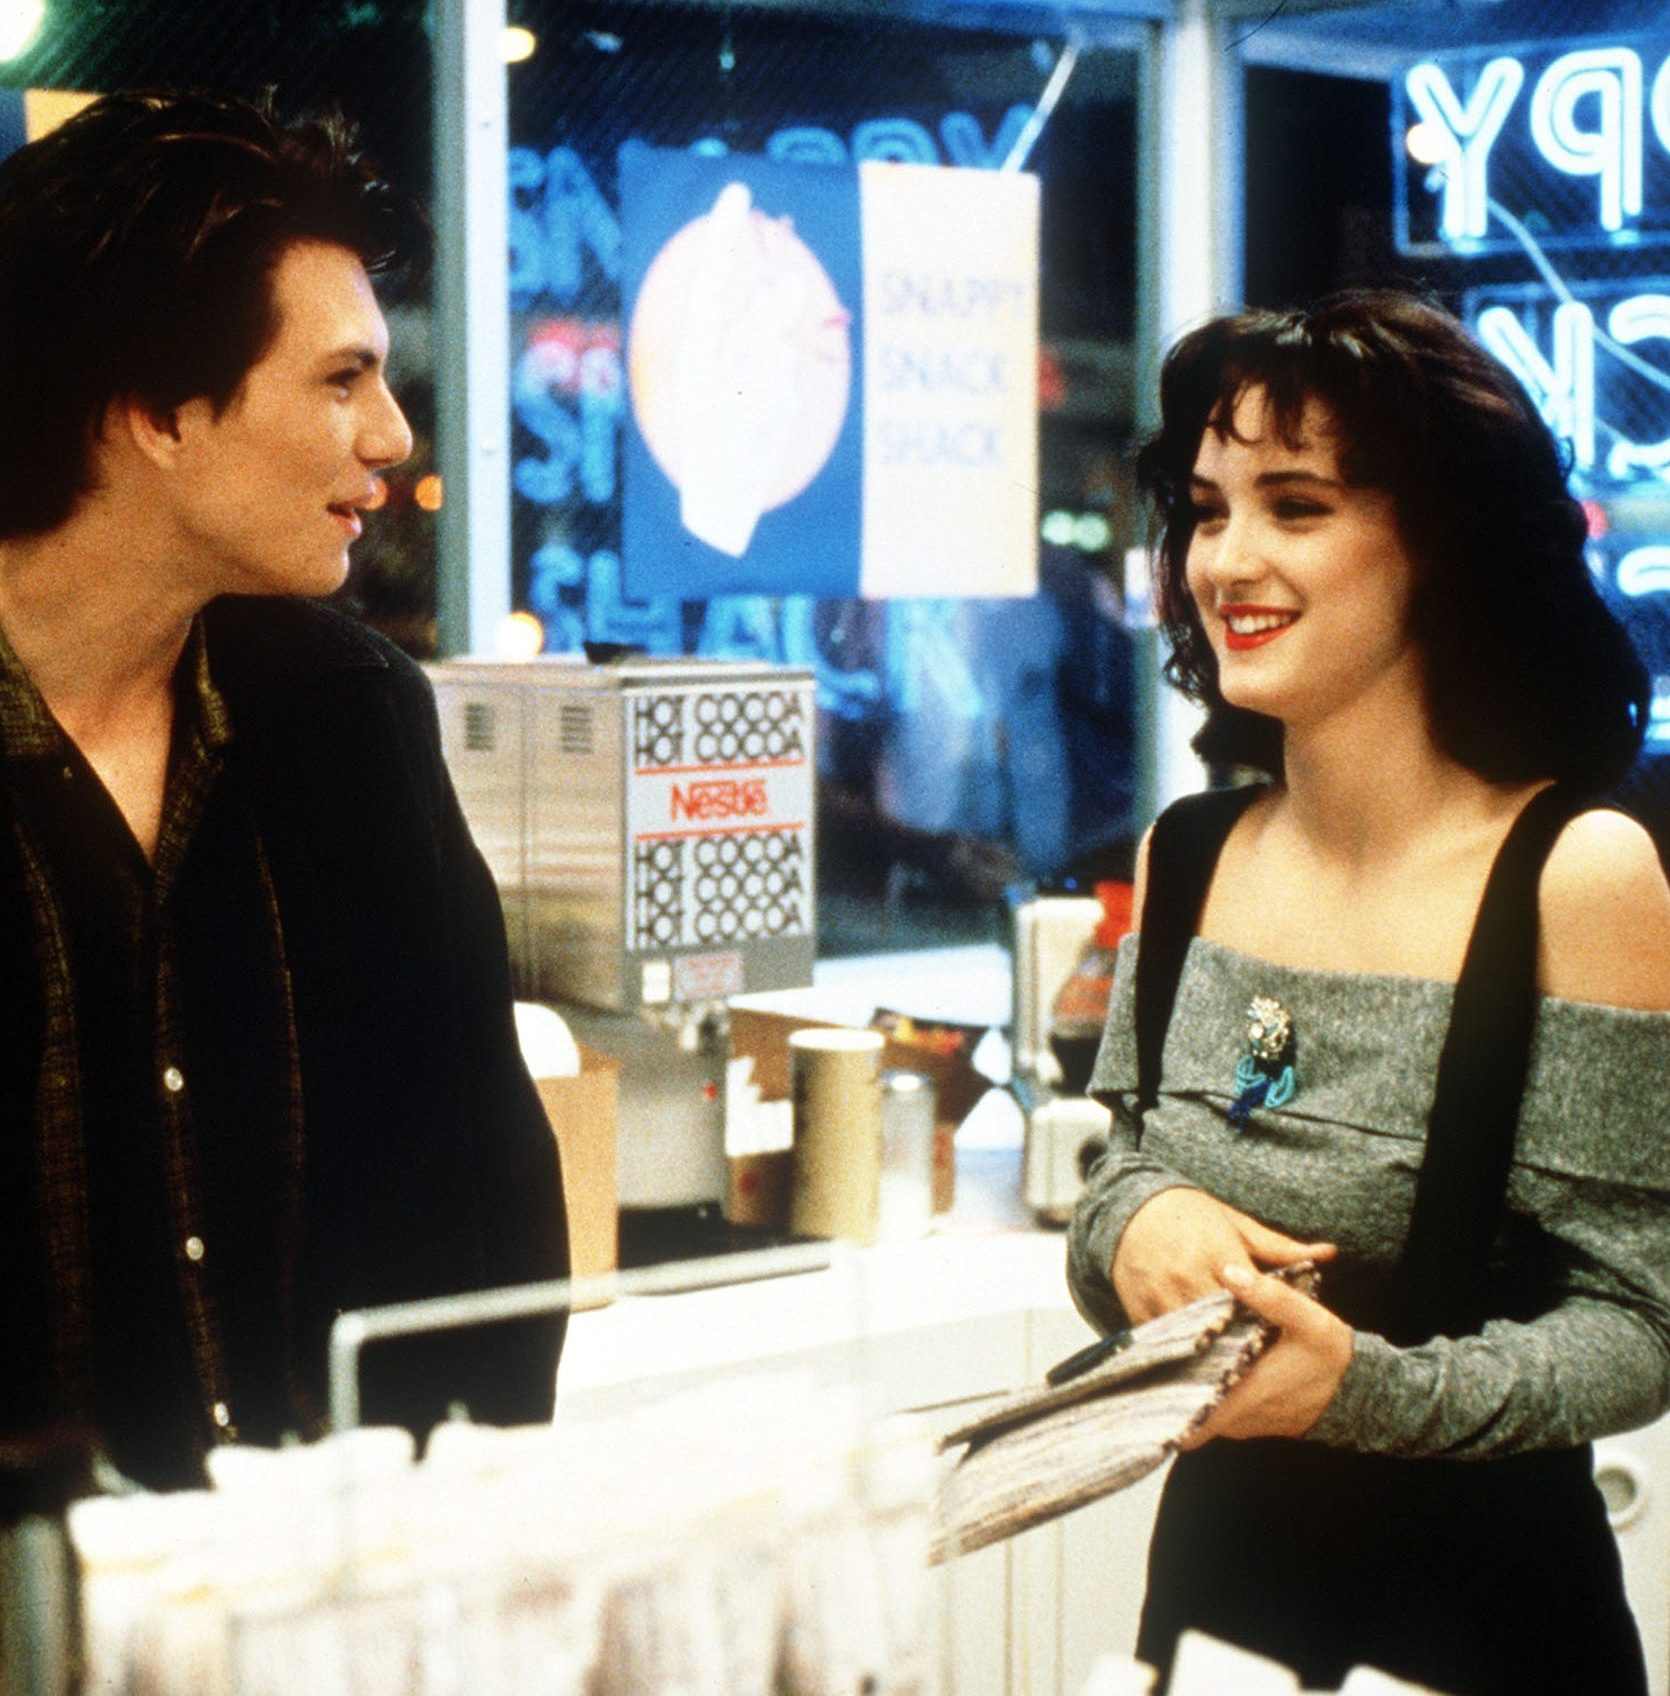 10 e1582635685481 20 Of The Best Anti-Valentine's Day Films For All The Cynics Out There